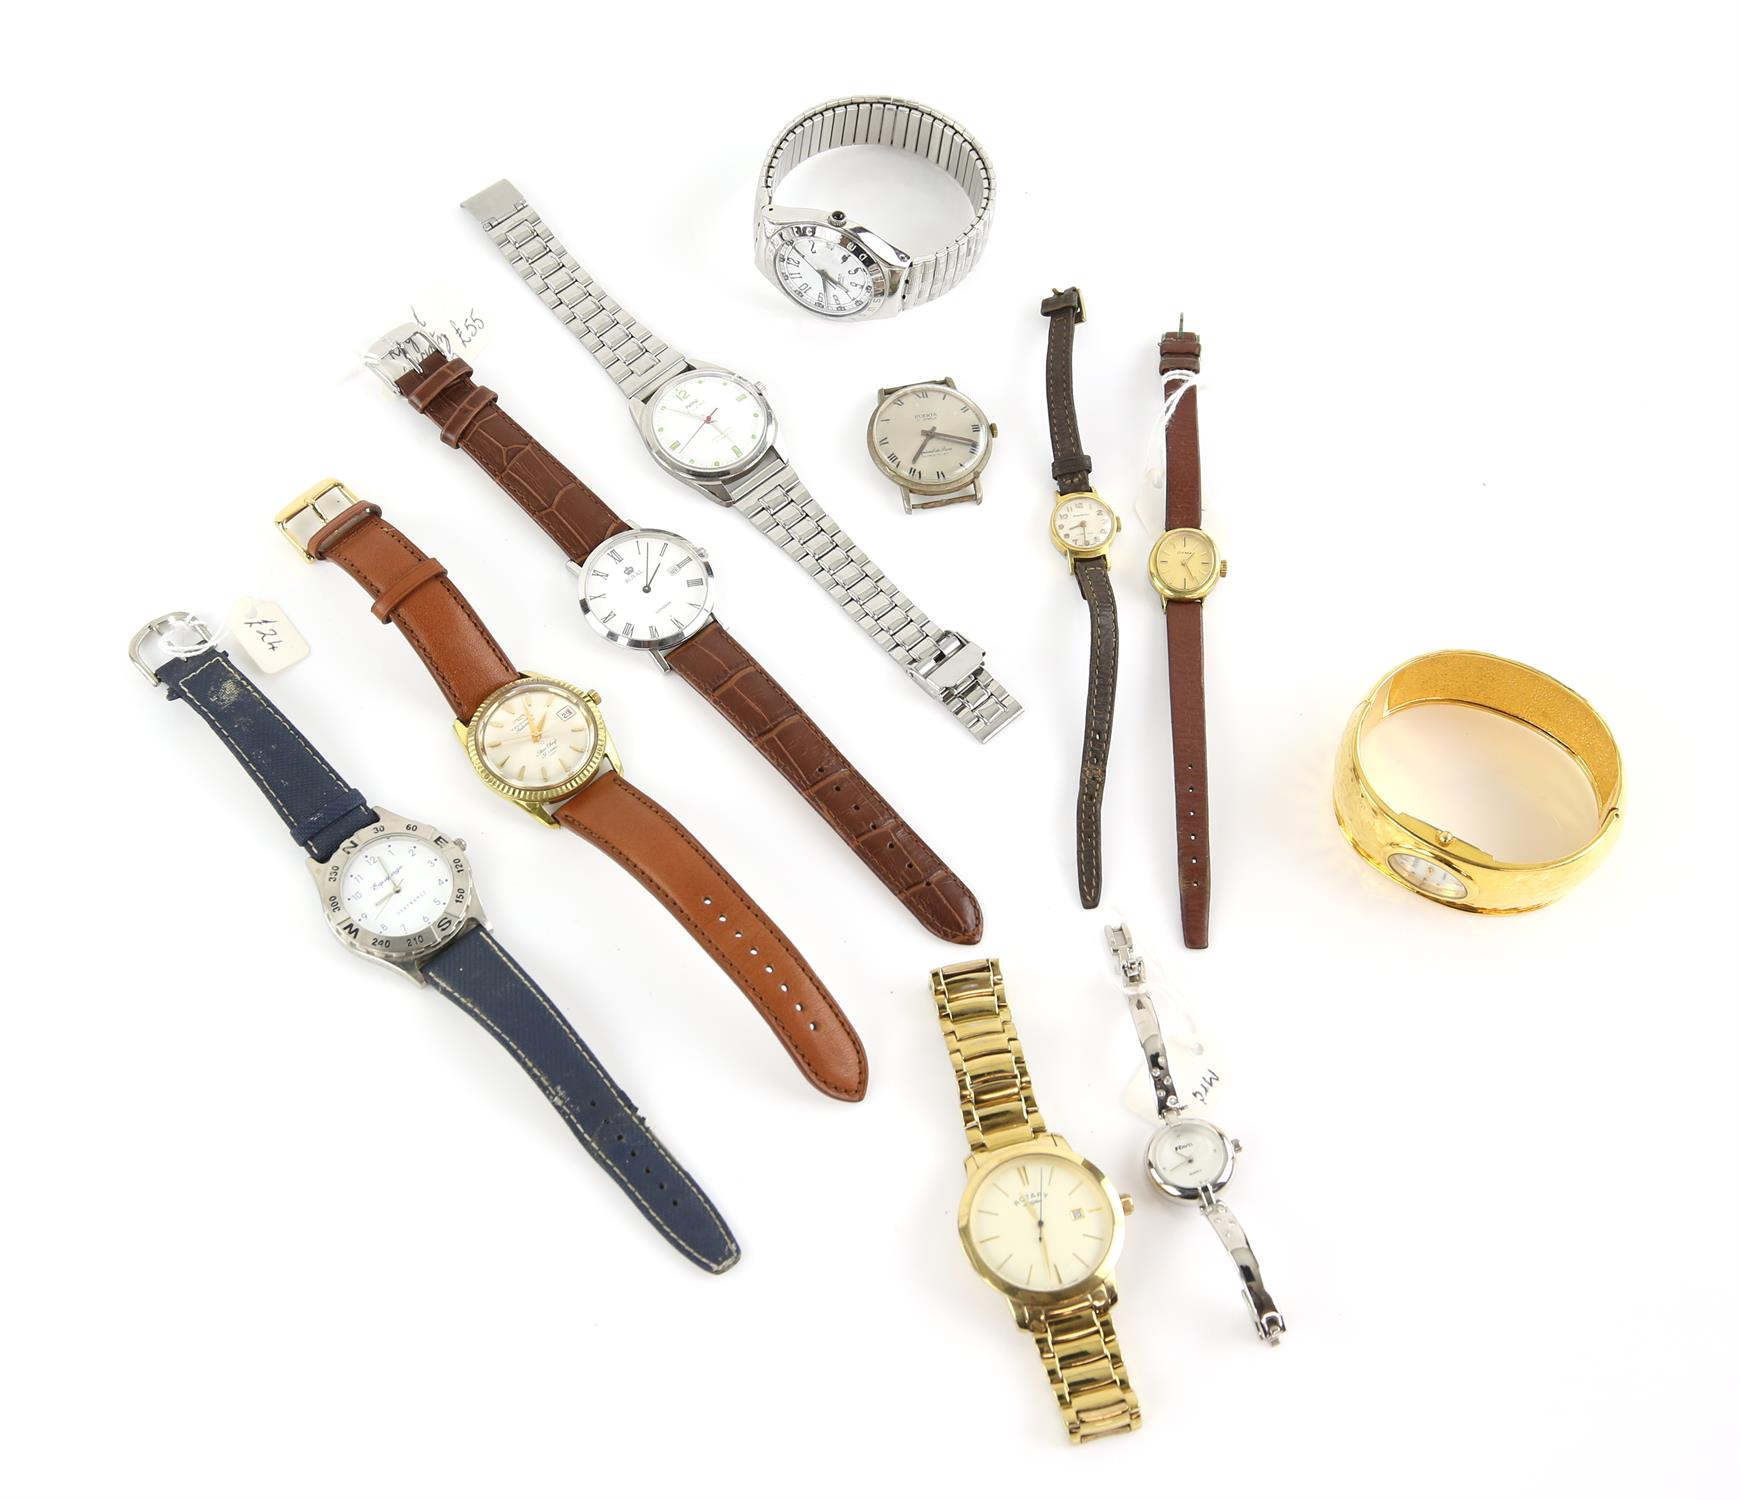 A group of assorted ladies and gentleman's wristwatches, including a Gentleman's stainless steel